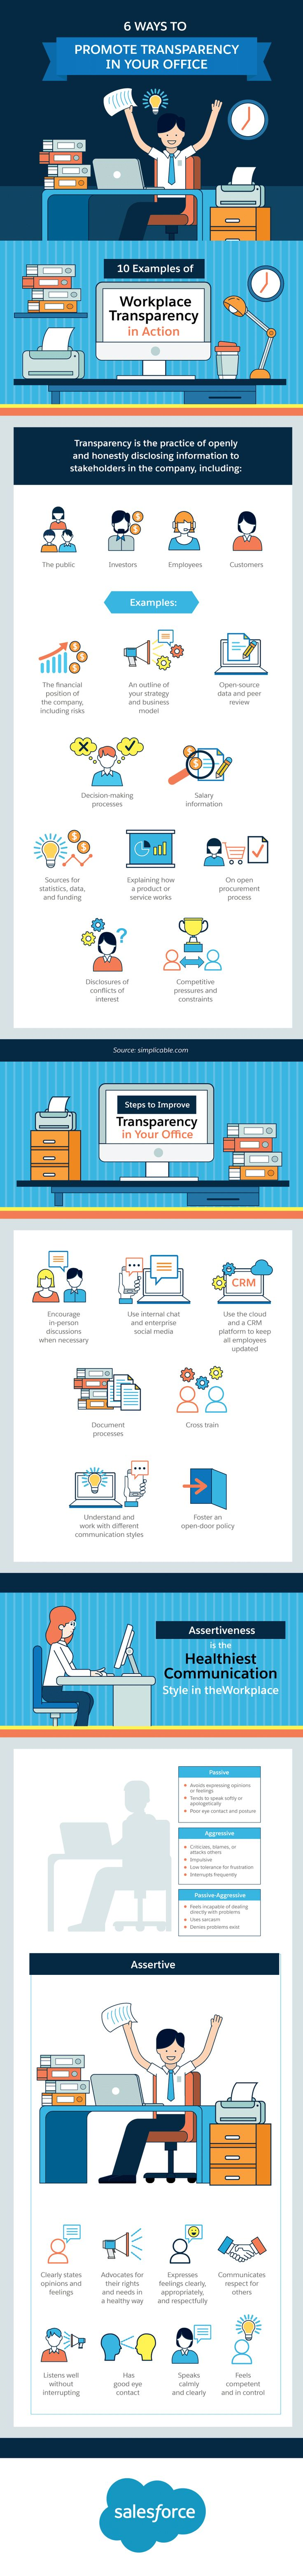 6 Ways to Promote Transparency in Your Office #Infographic #Business #Productivity